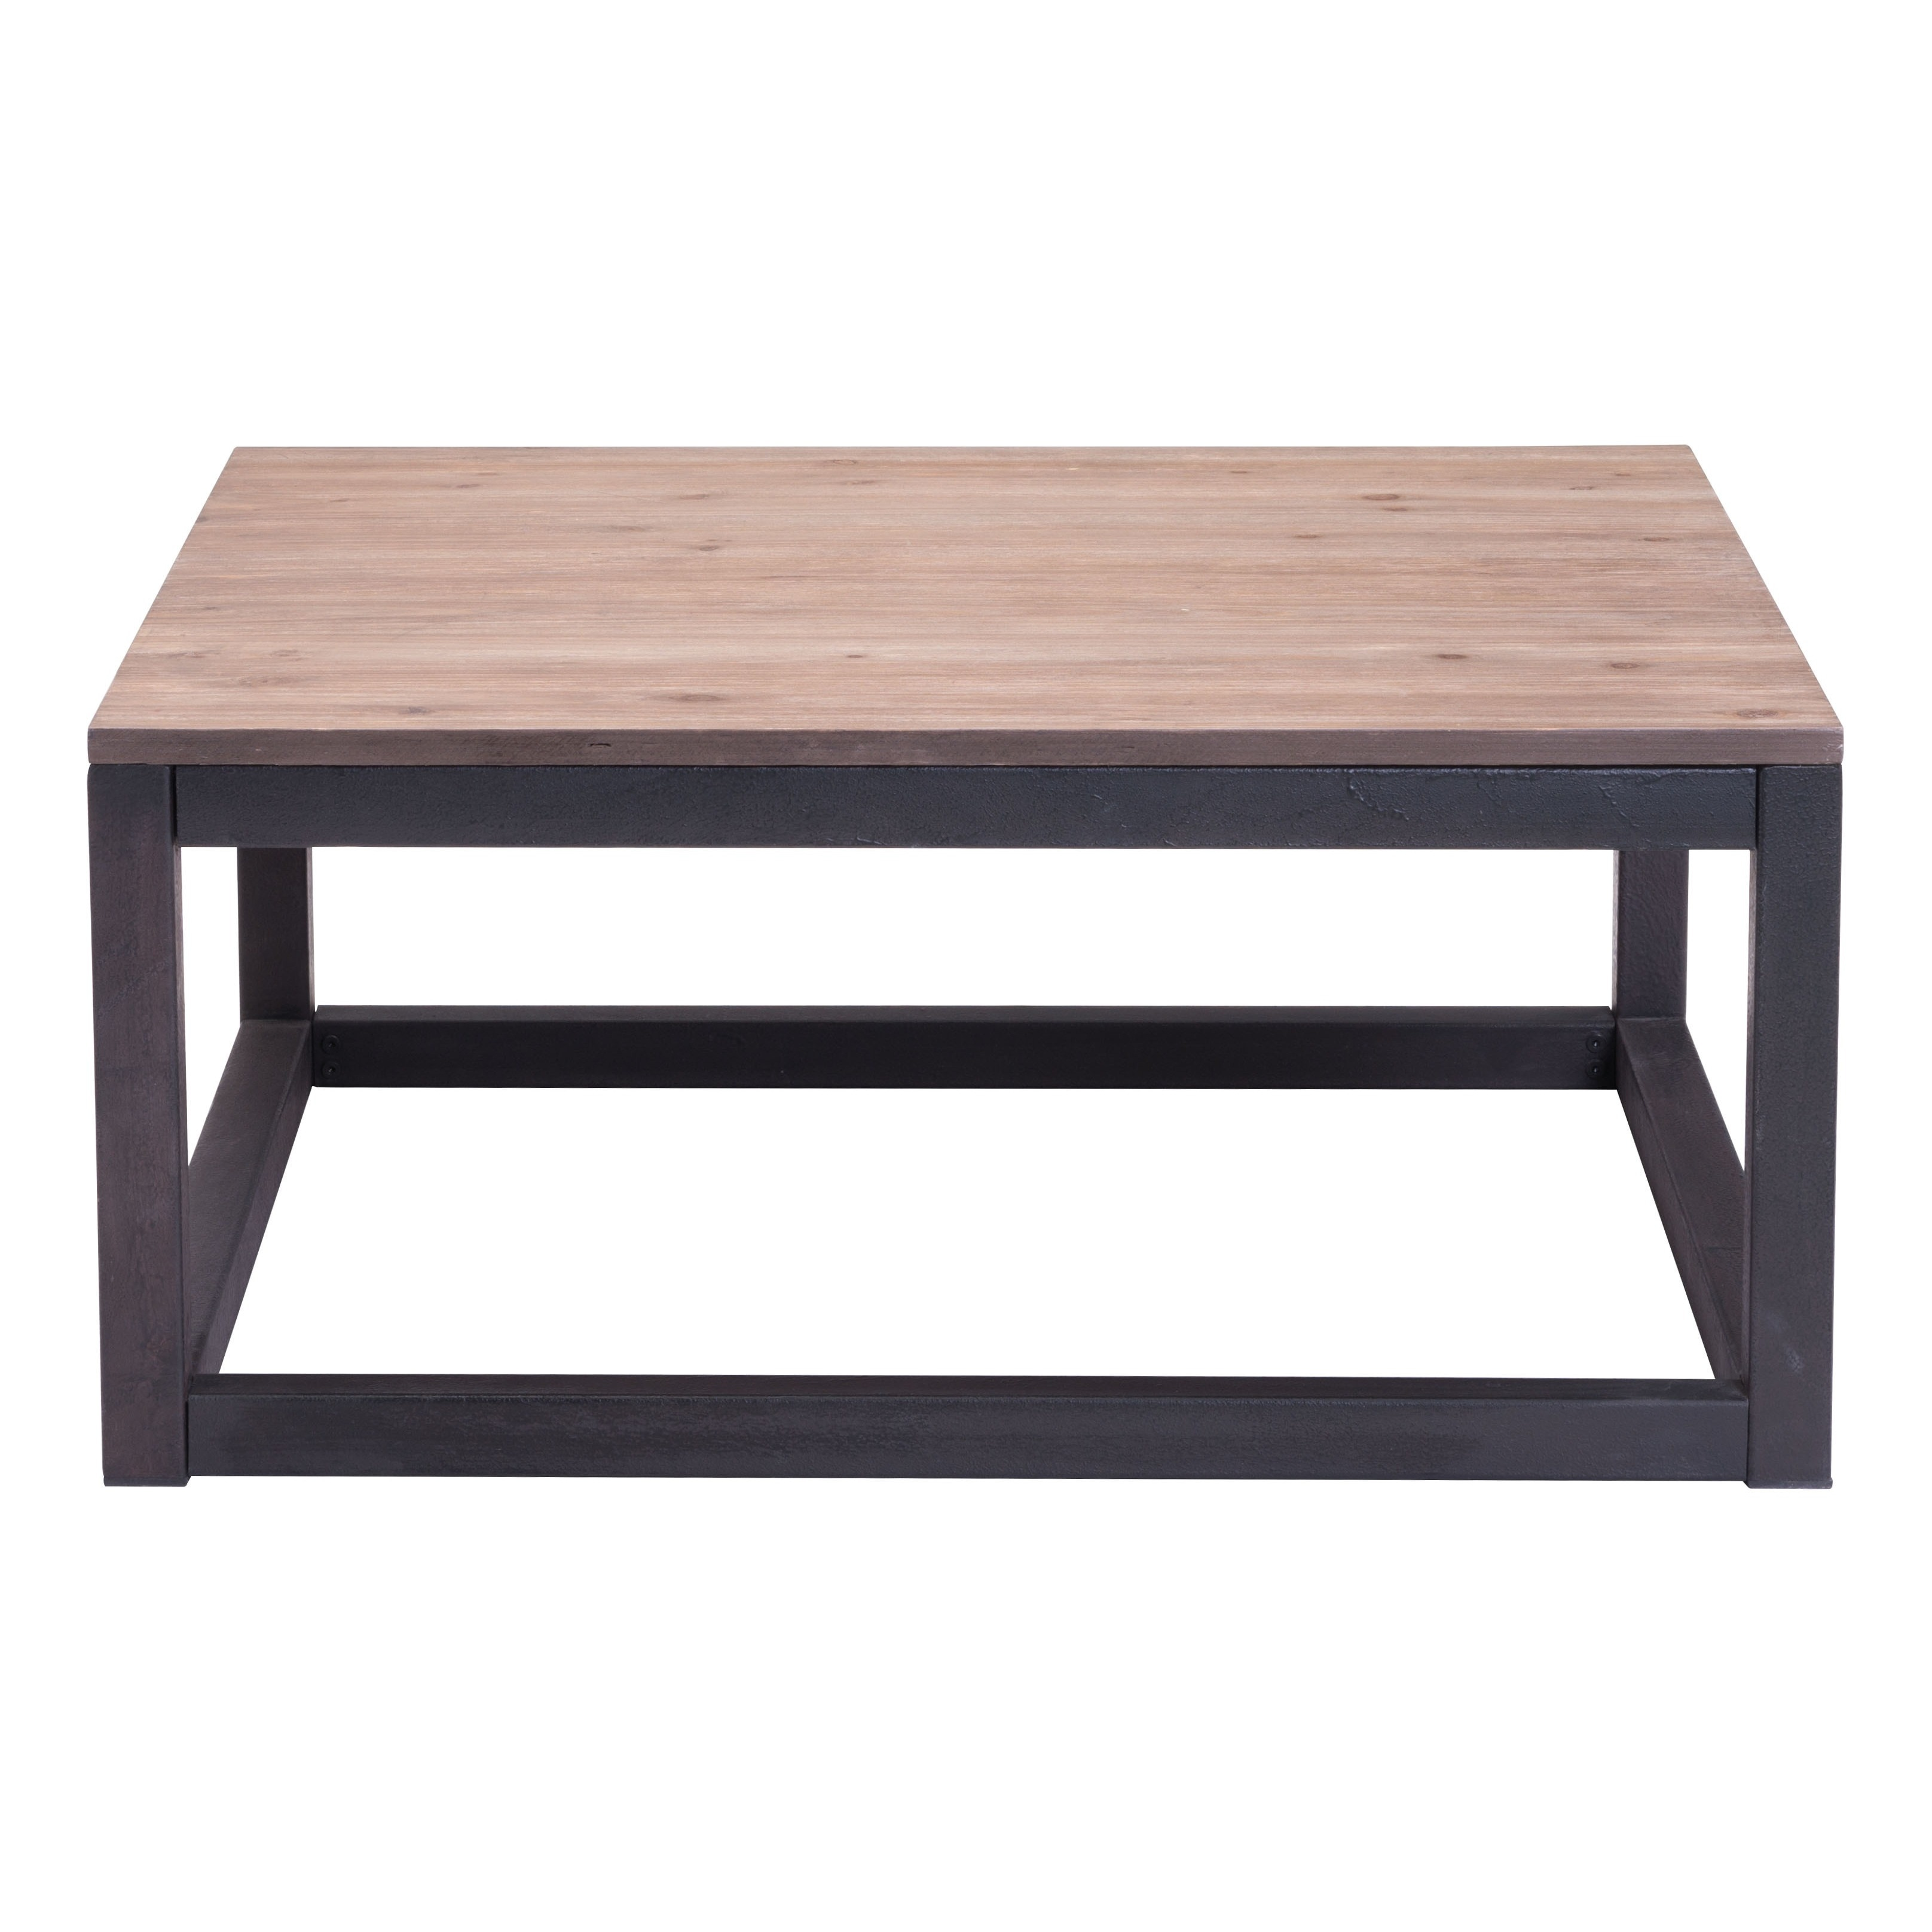 Civic Center Distressed Natural Square Coffee Table Free Shipping Today 7492147